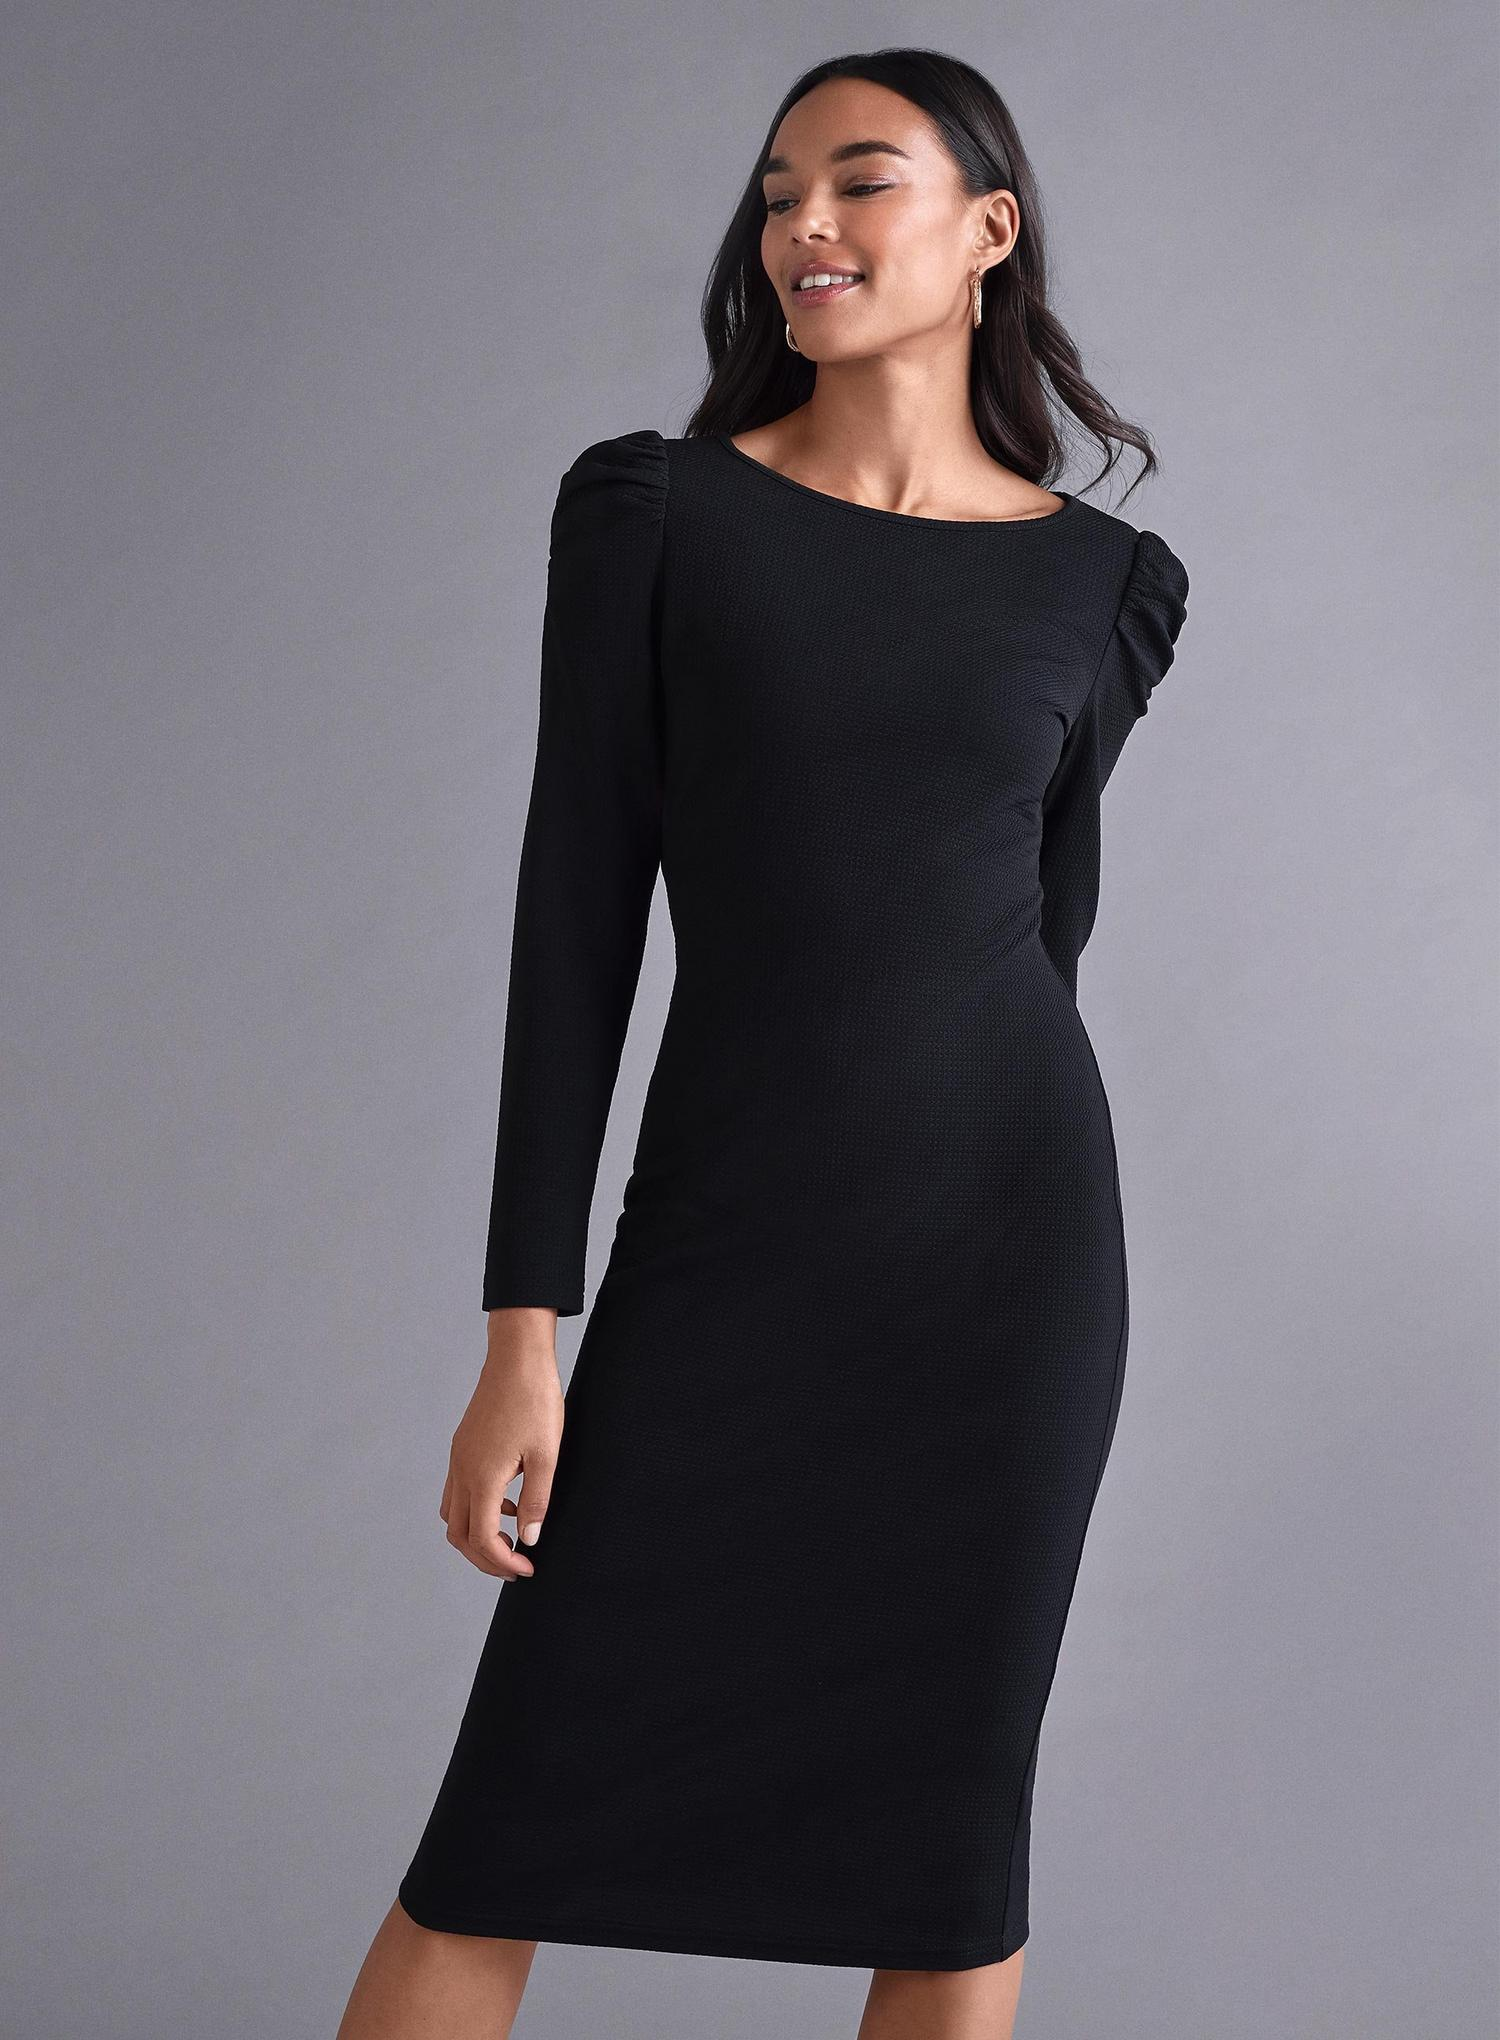 105 Black Ruched Bodycon Dress image number 1